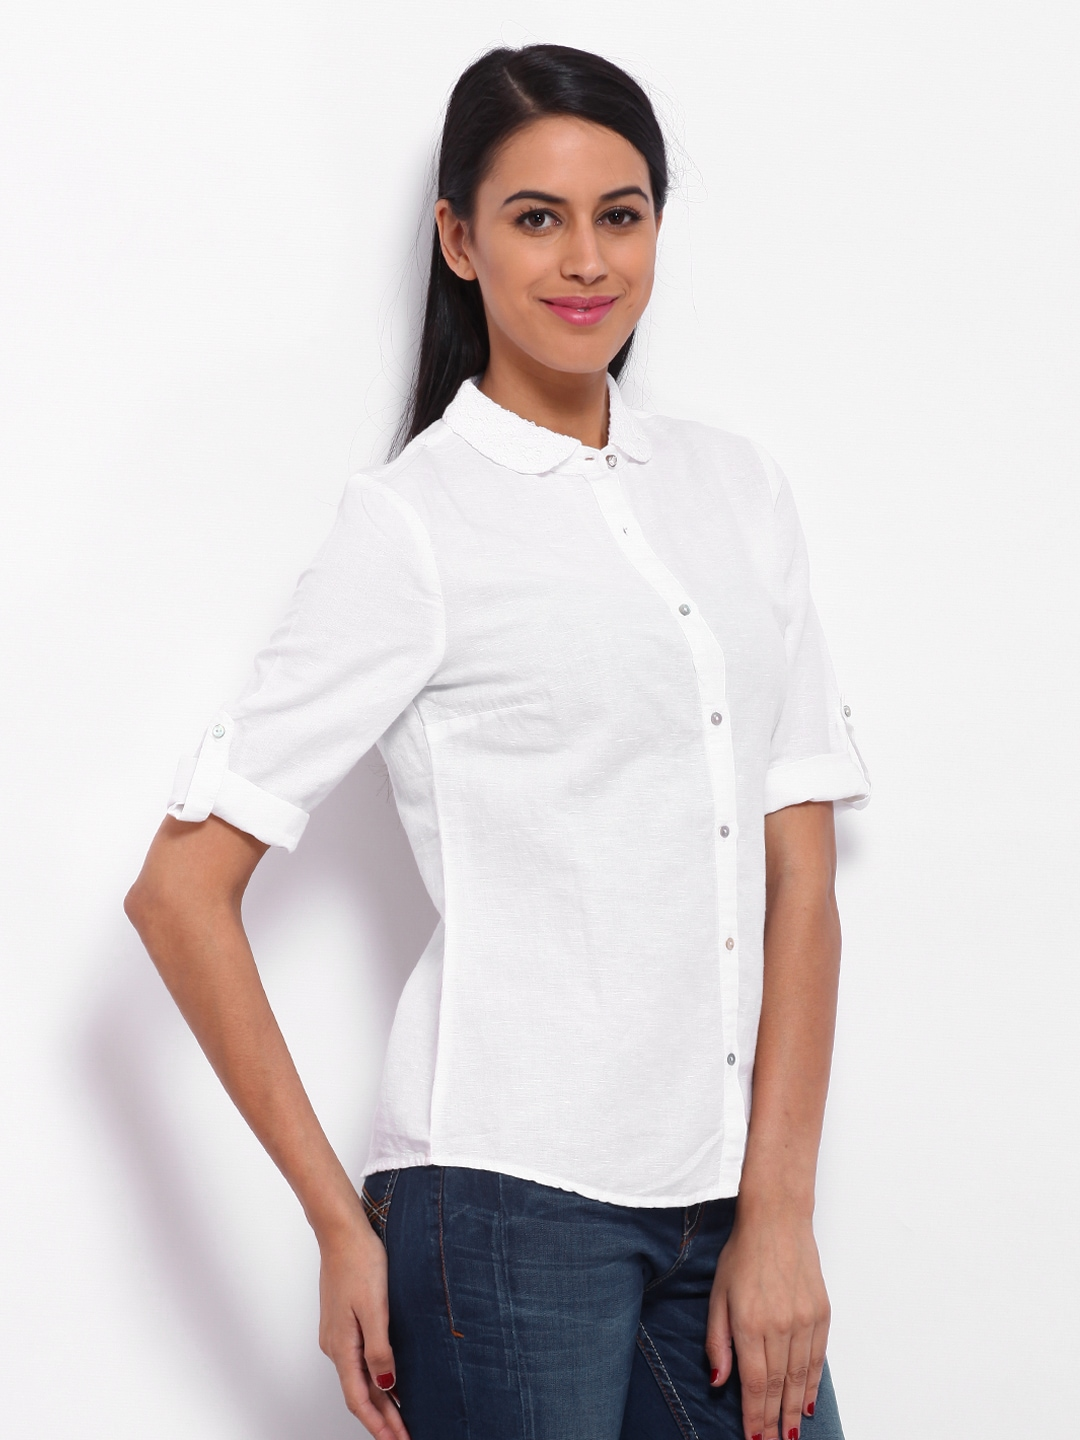 white shirt for women online artee shirt